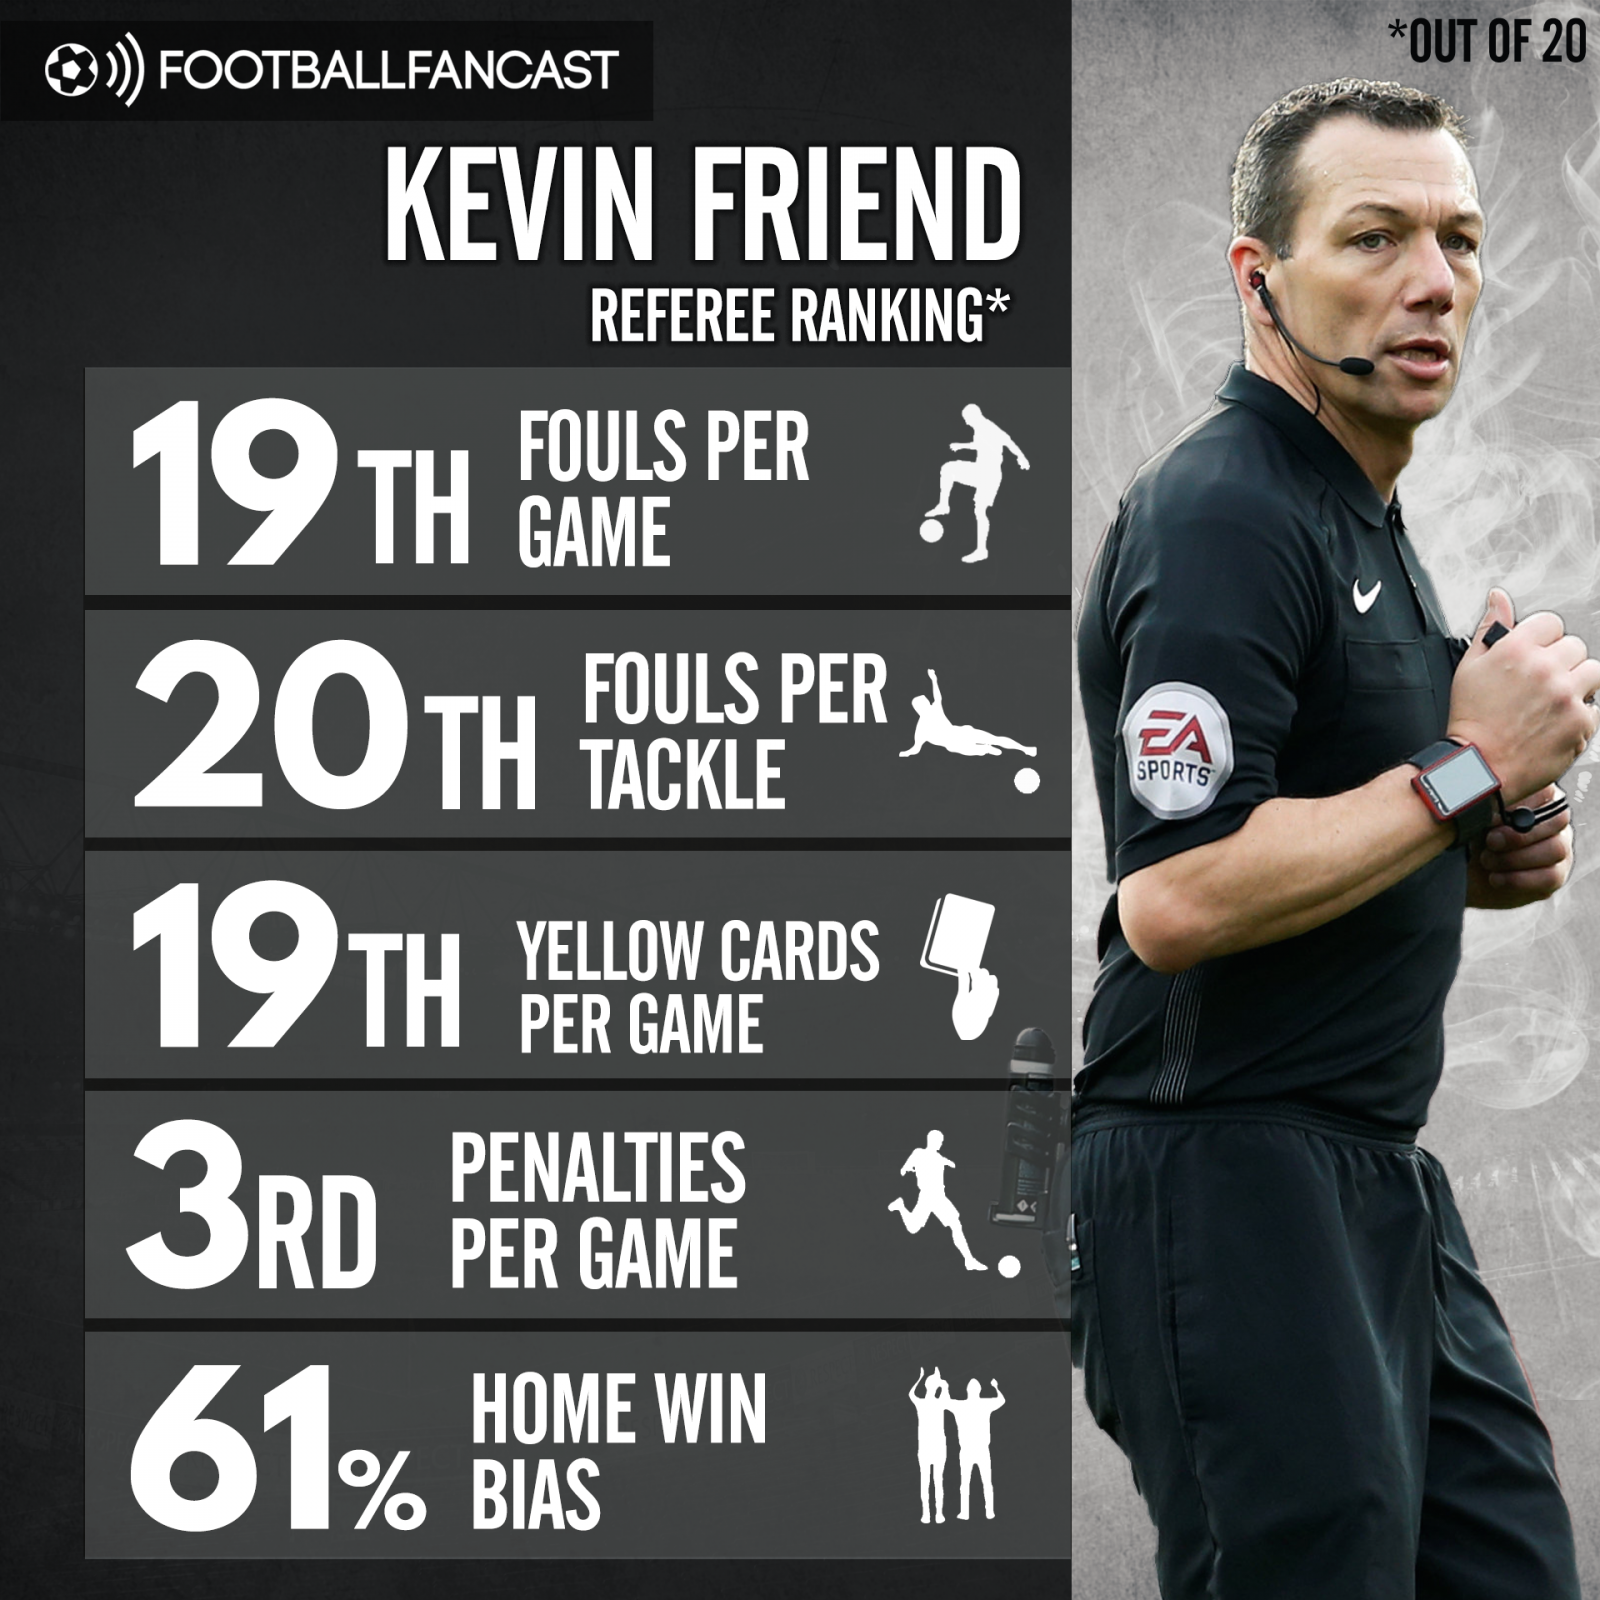 Kevin Friend's statistics in the Premier League this season